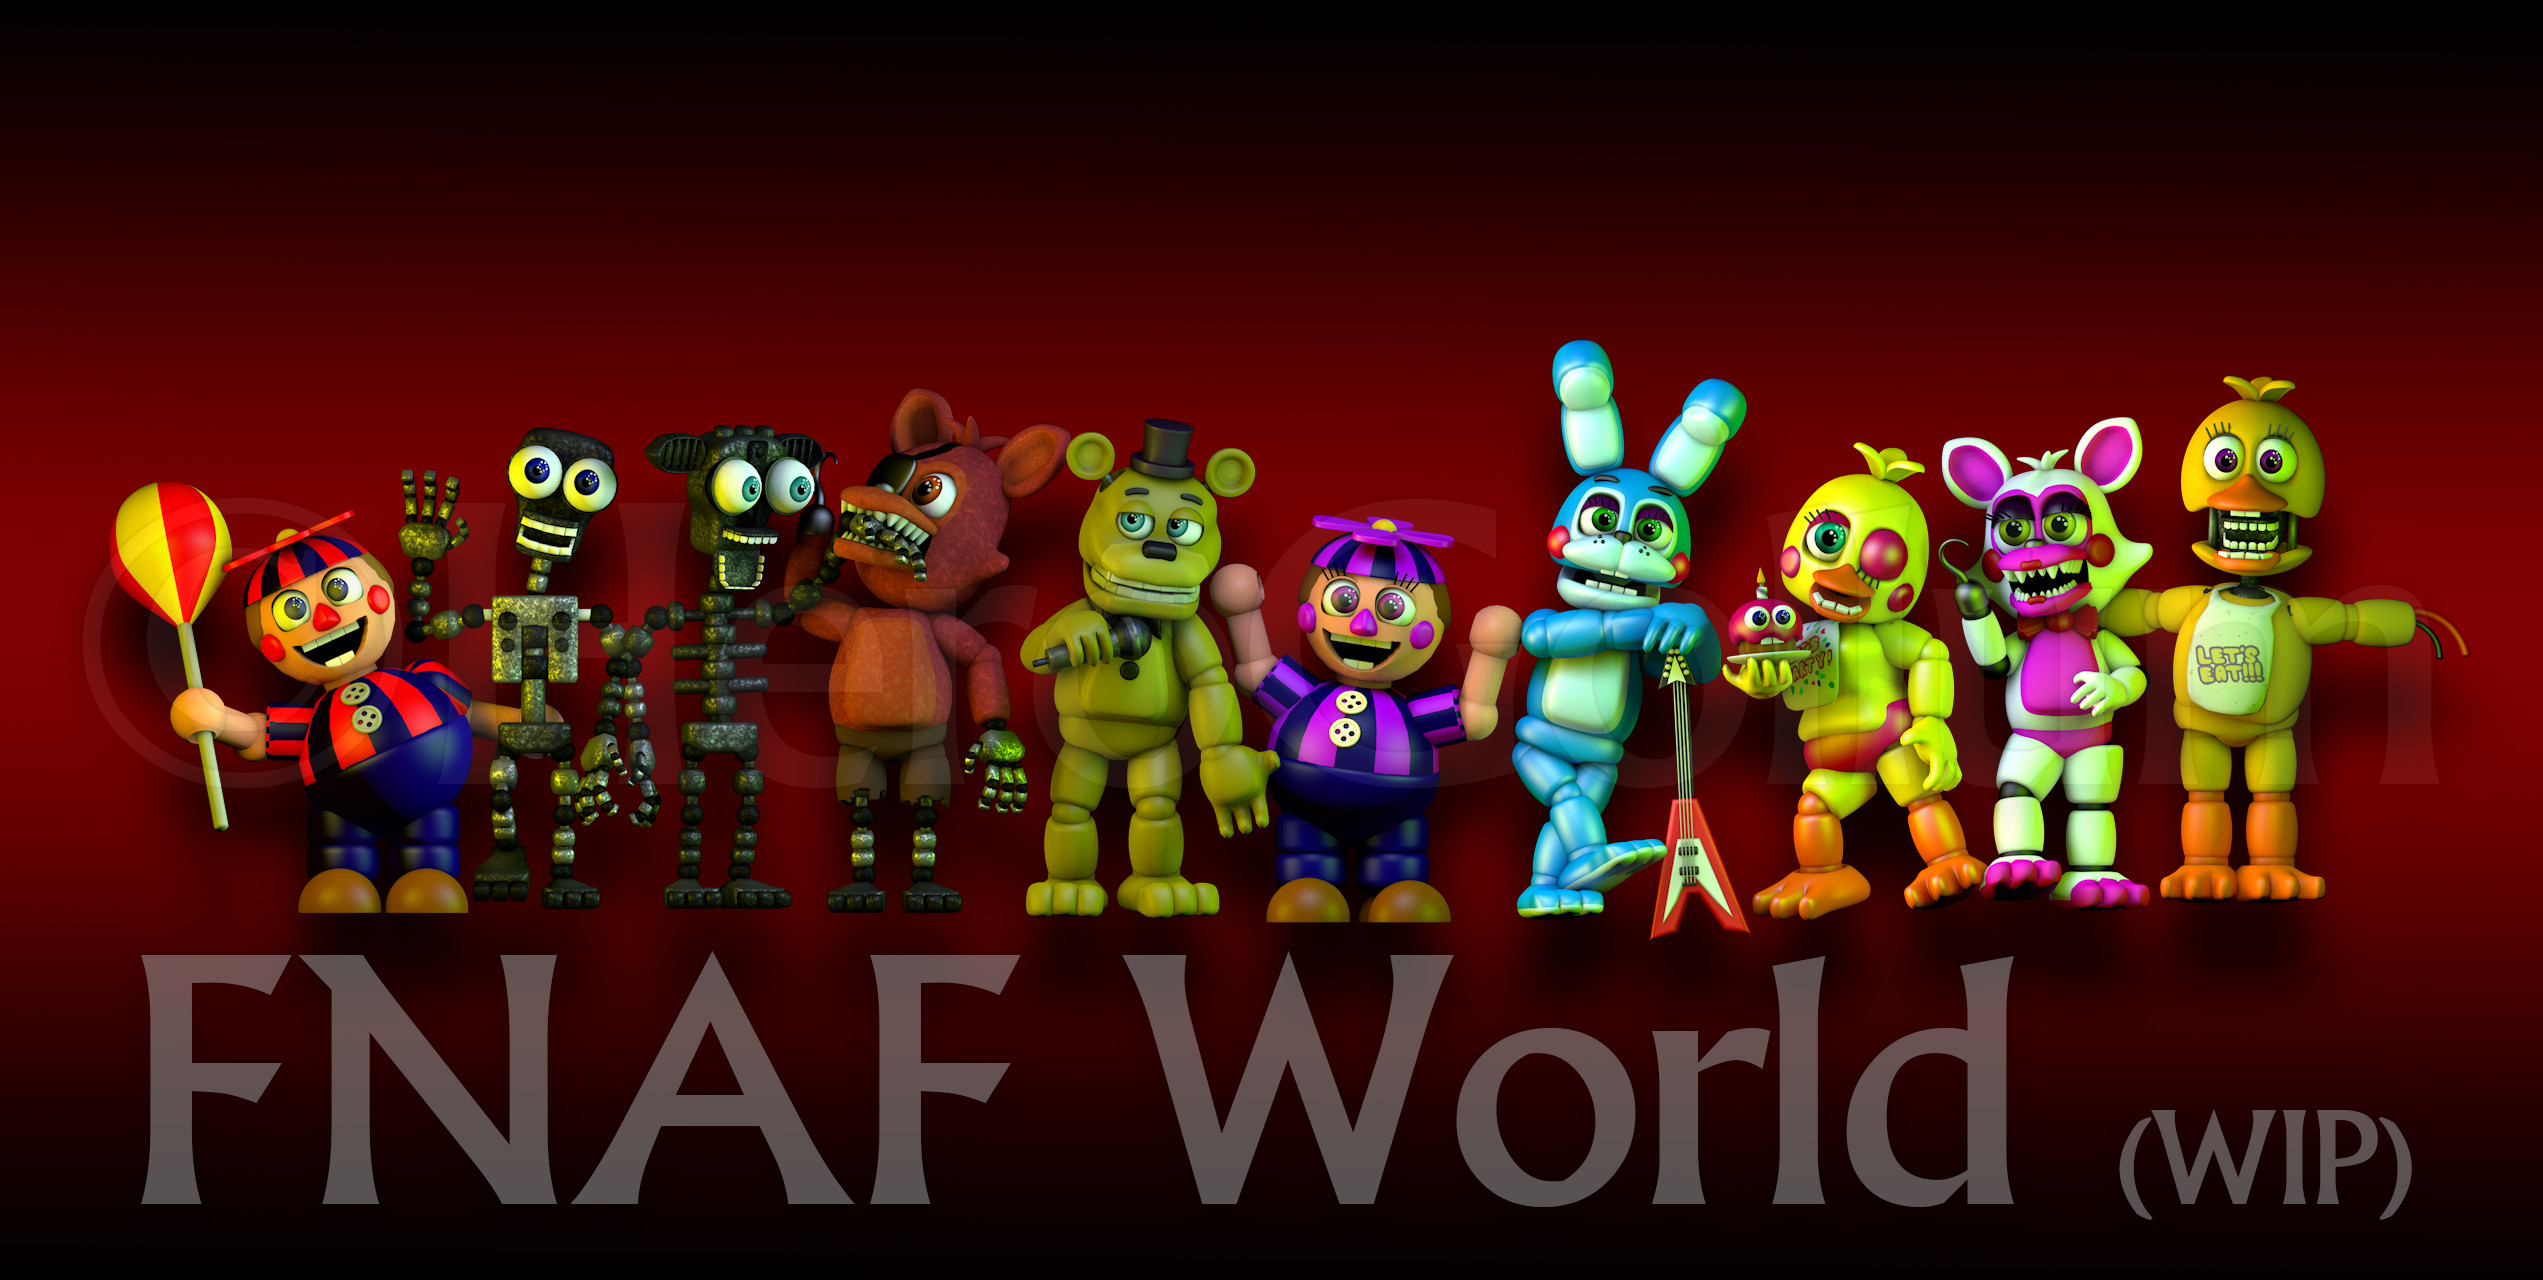 2543x1280 FNAF World Art! by HeroGollum on DeviantArt